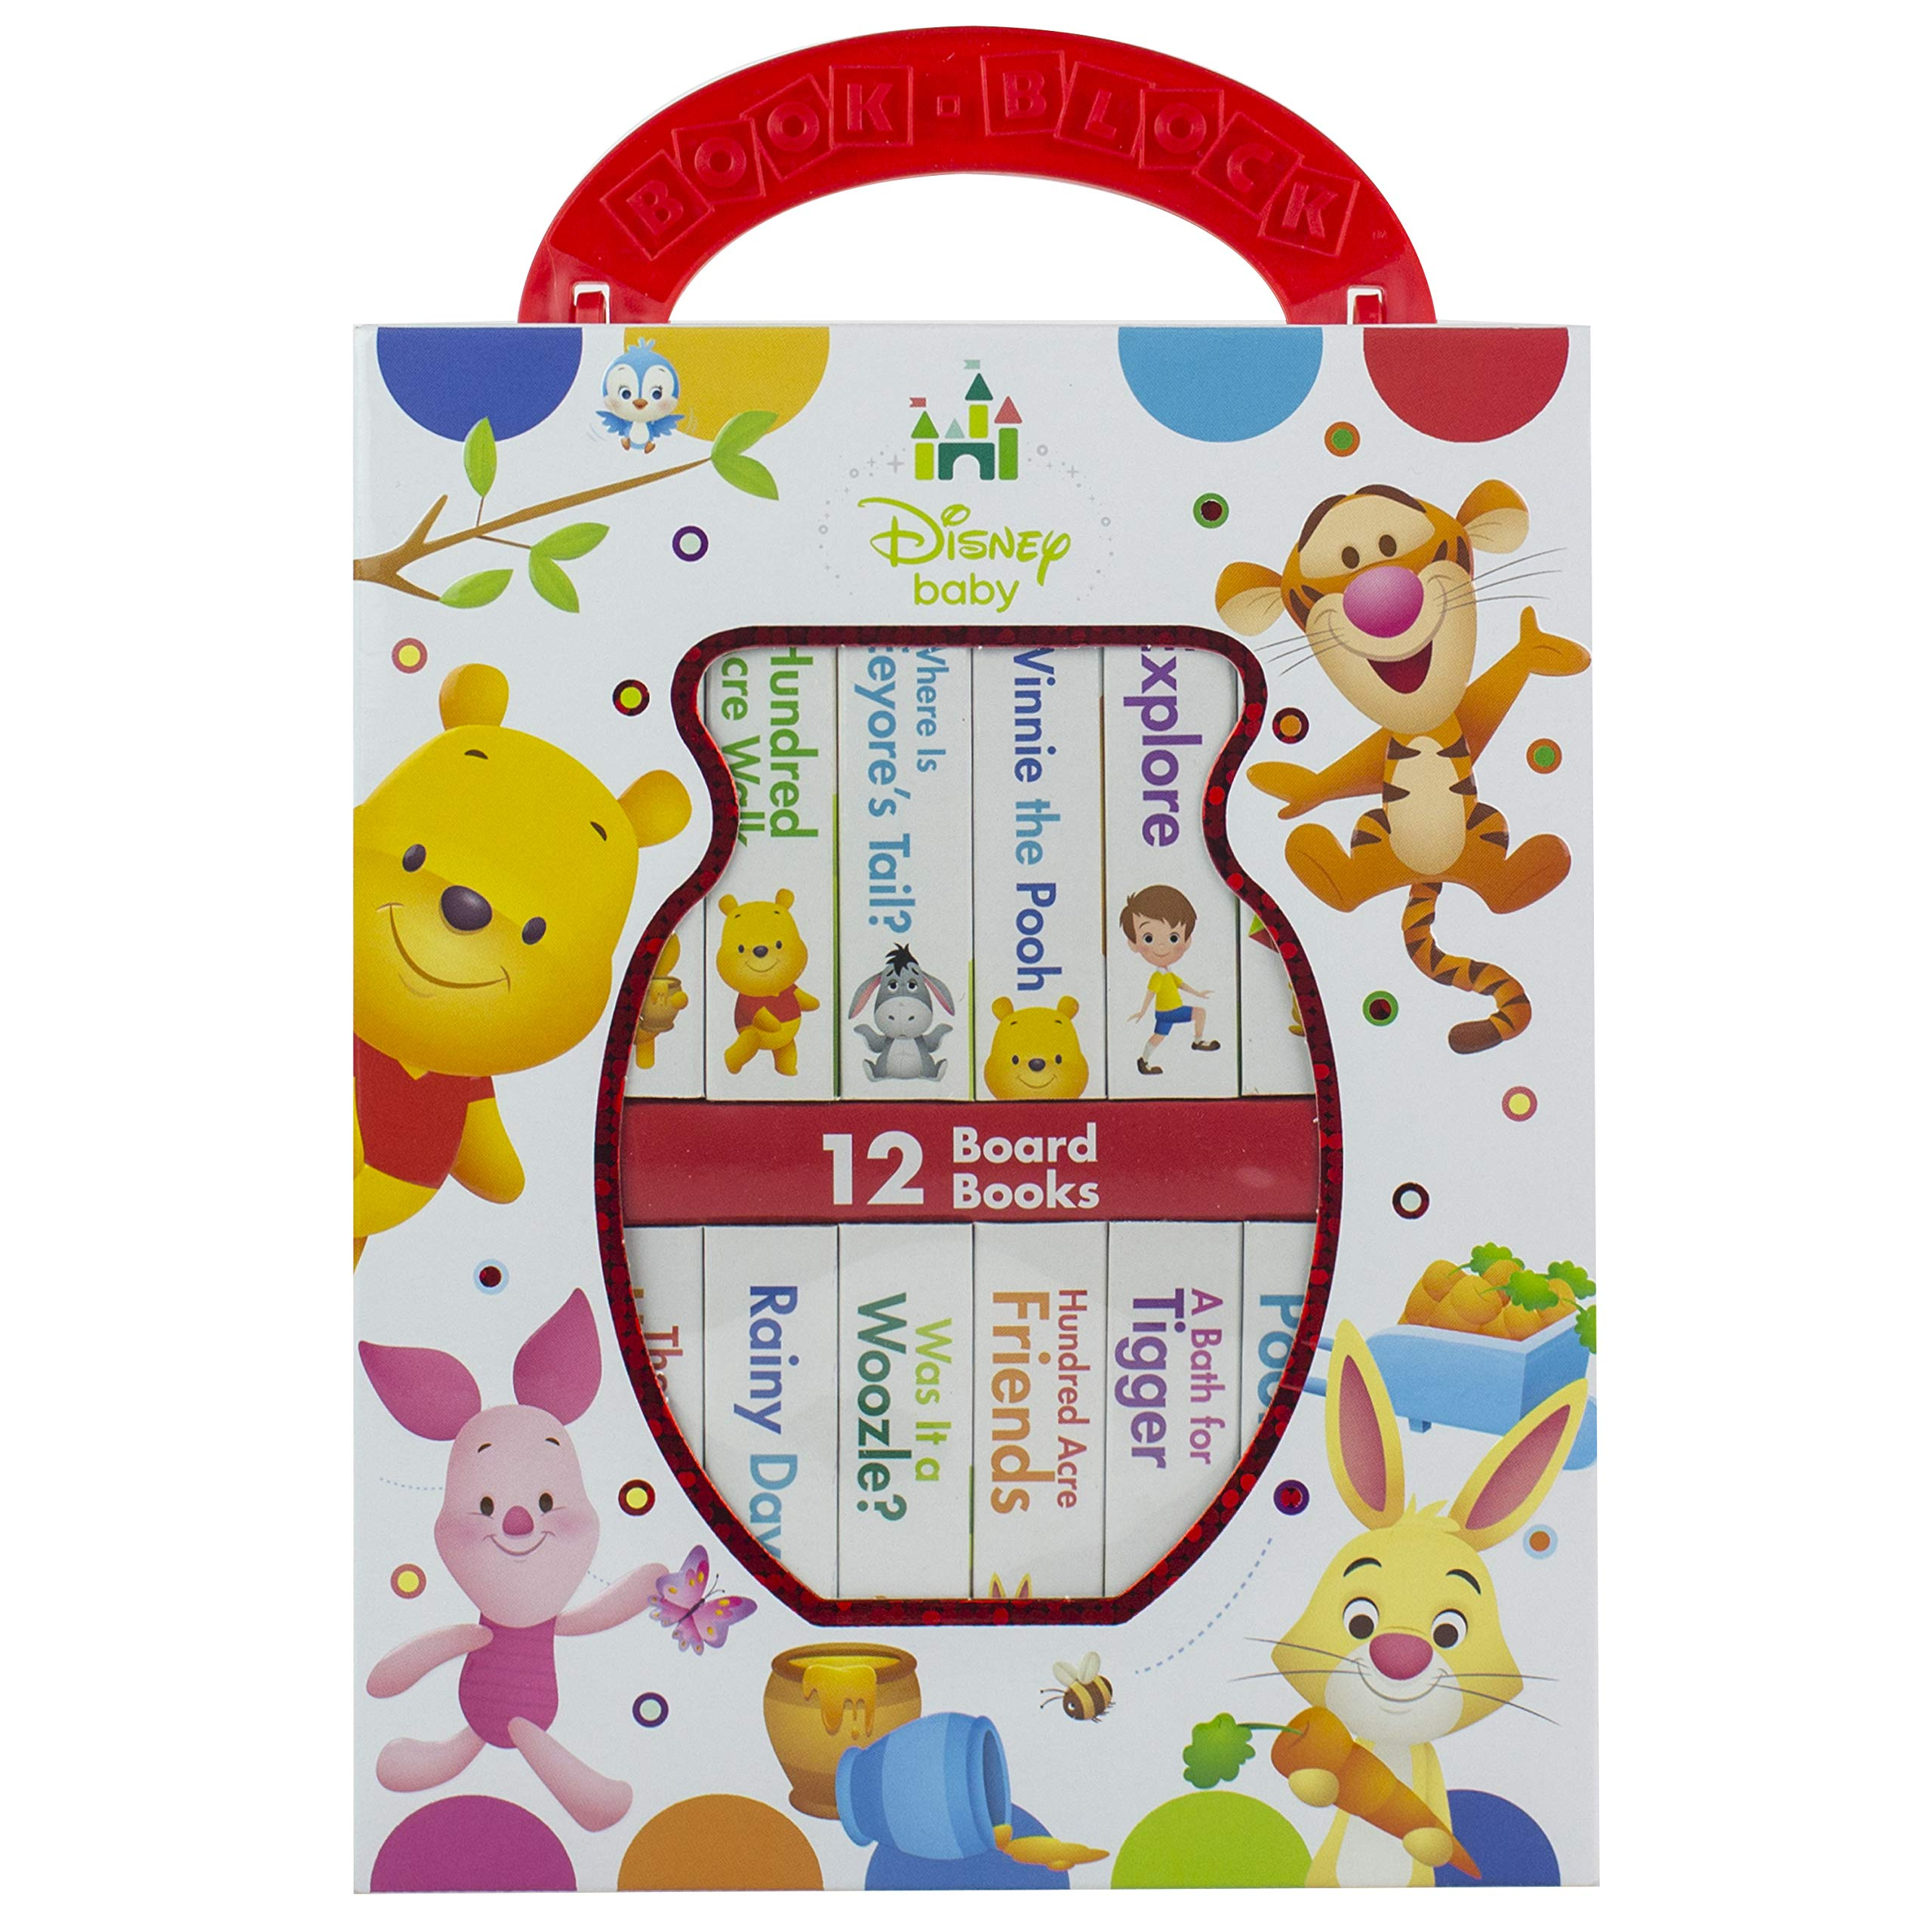 Disney Baby - Winnie the Pooh - My First Library Book Block - PI Kids